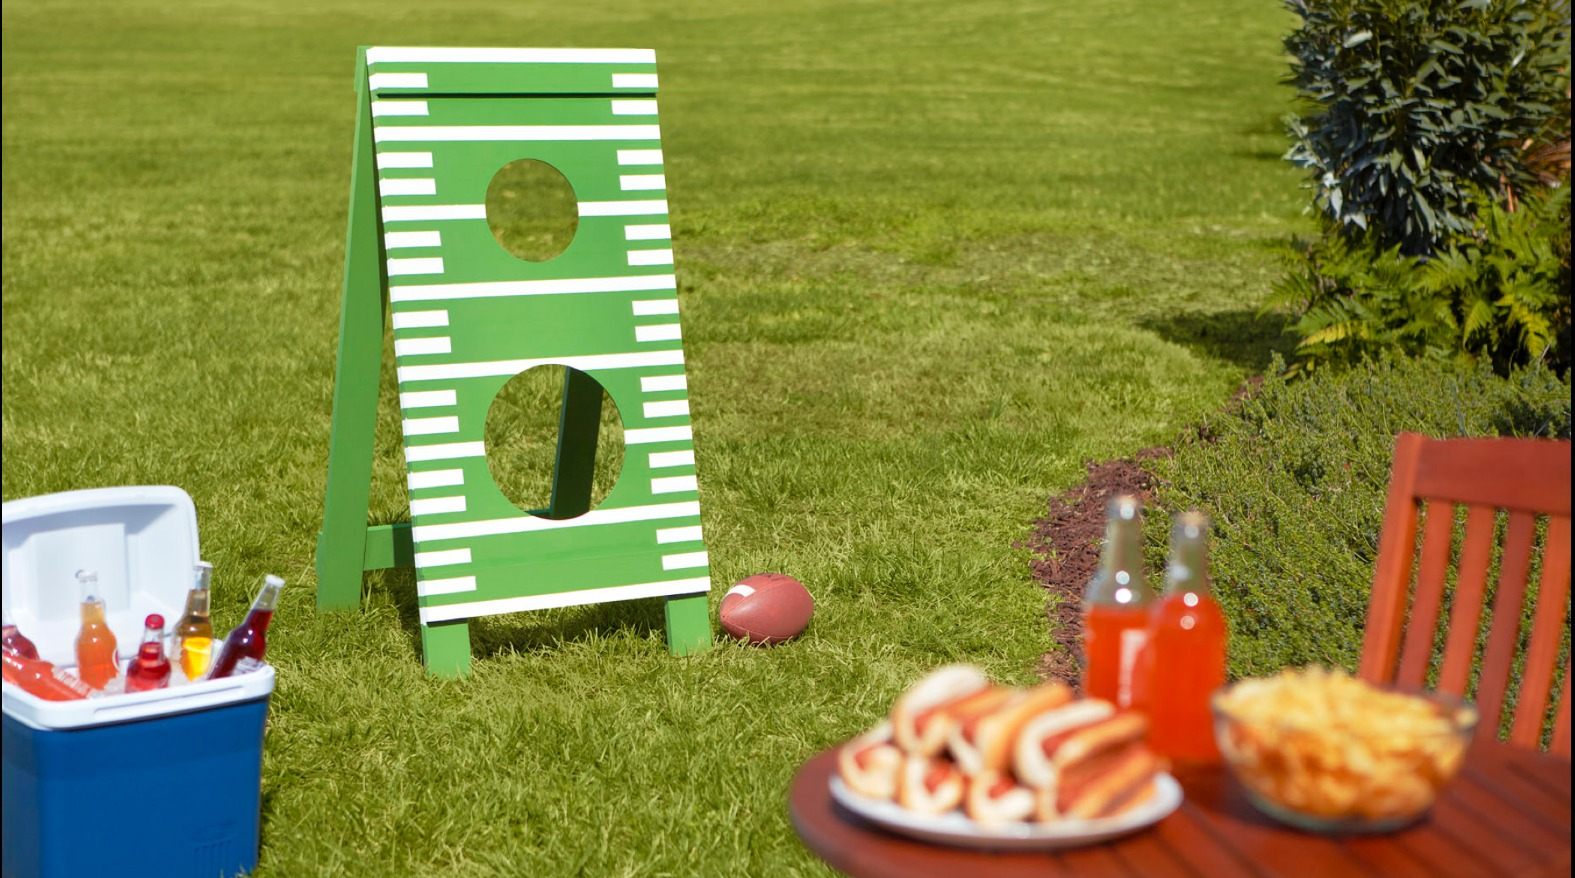 DIY Father's Day Football Toss. Do you realize you can make this for FREE at the DIY Home Depot Workshops? Perfect for a family gathering. What Dad wouldn't love this? Perfect gift idea.